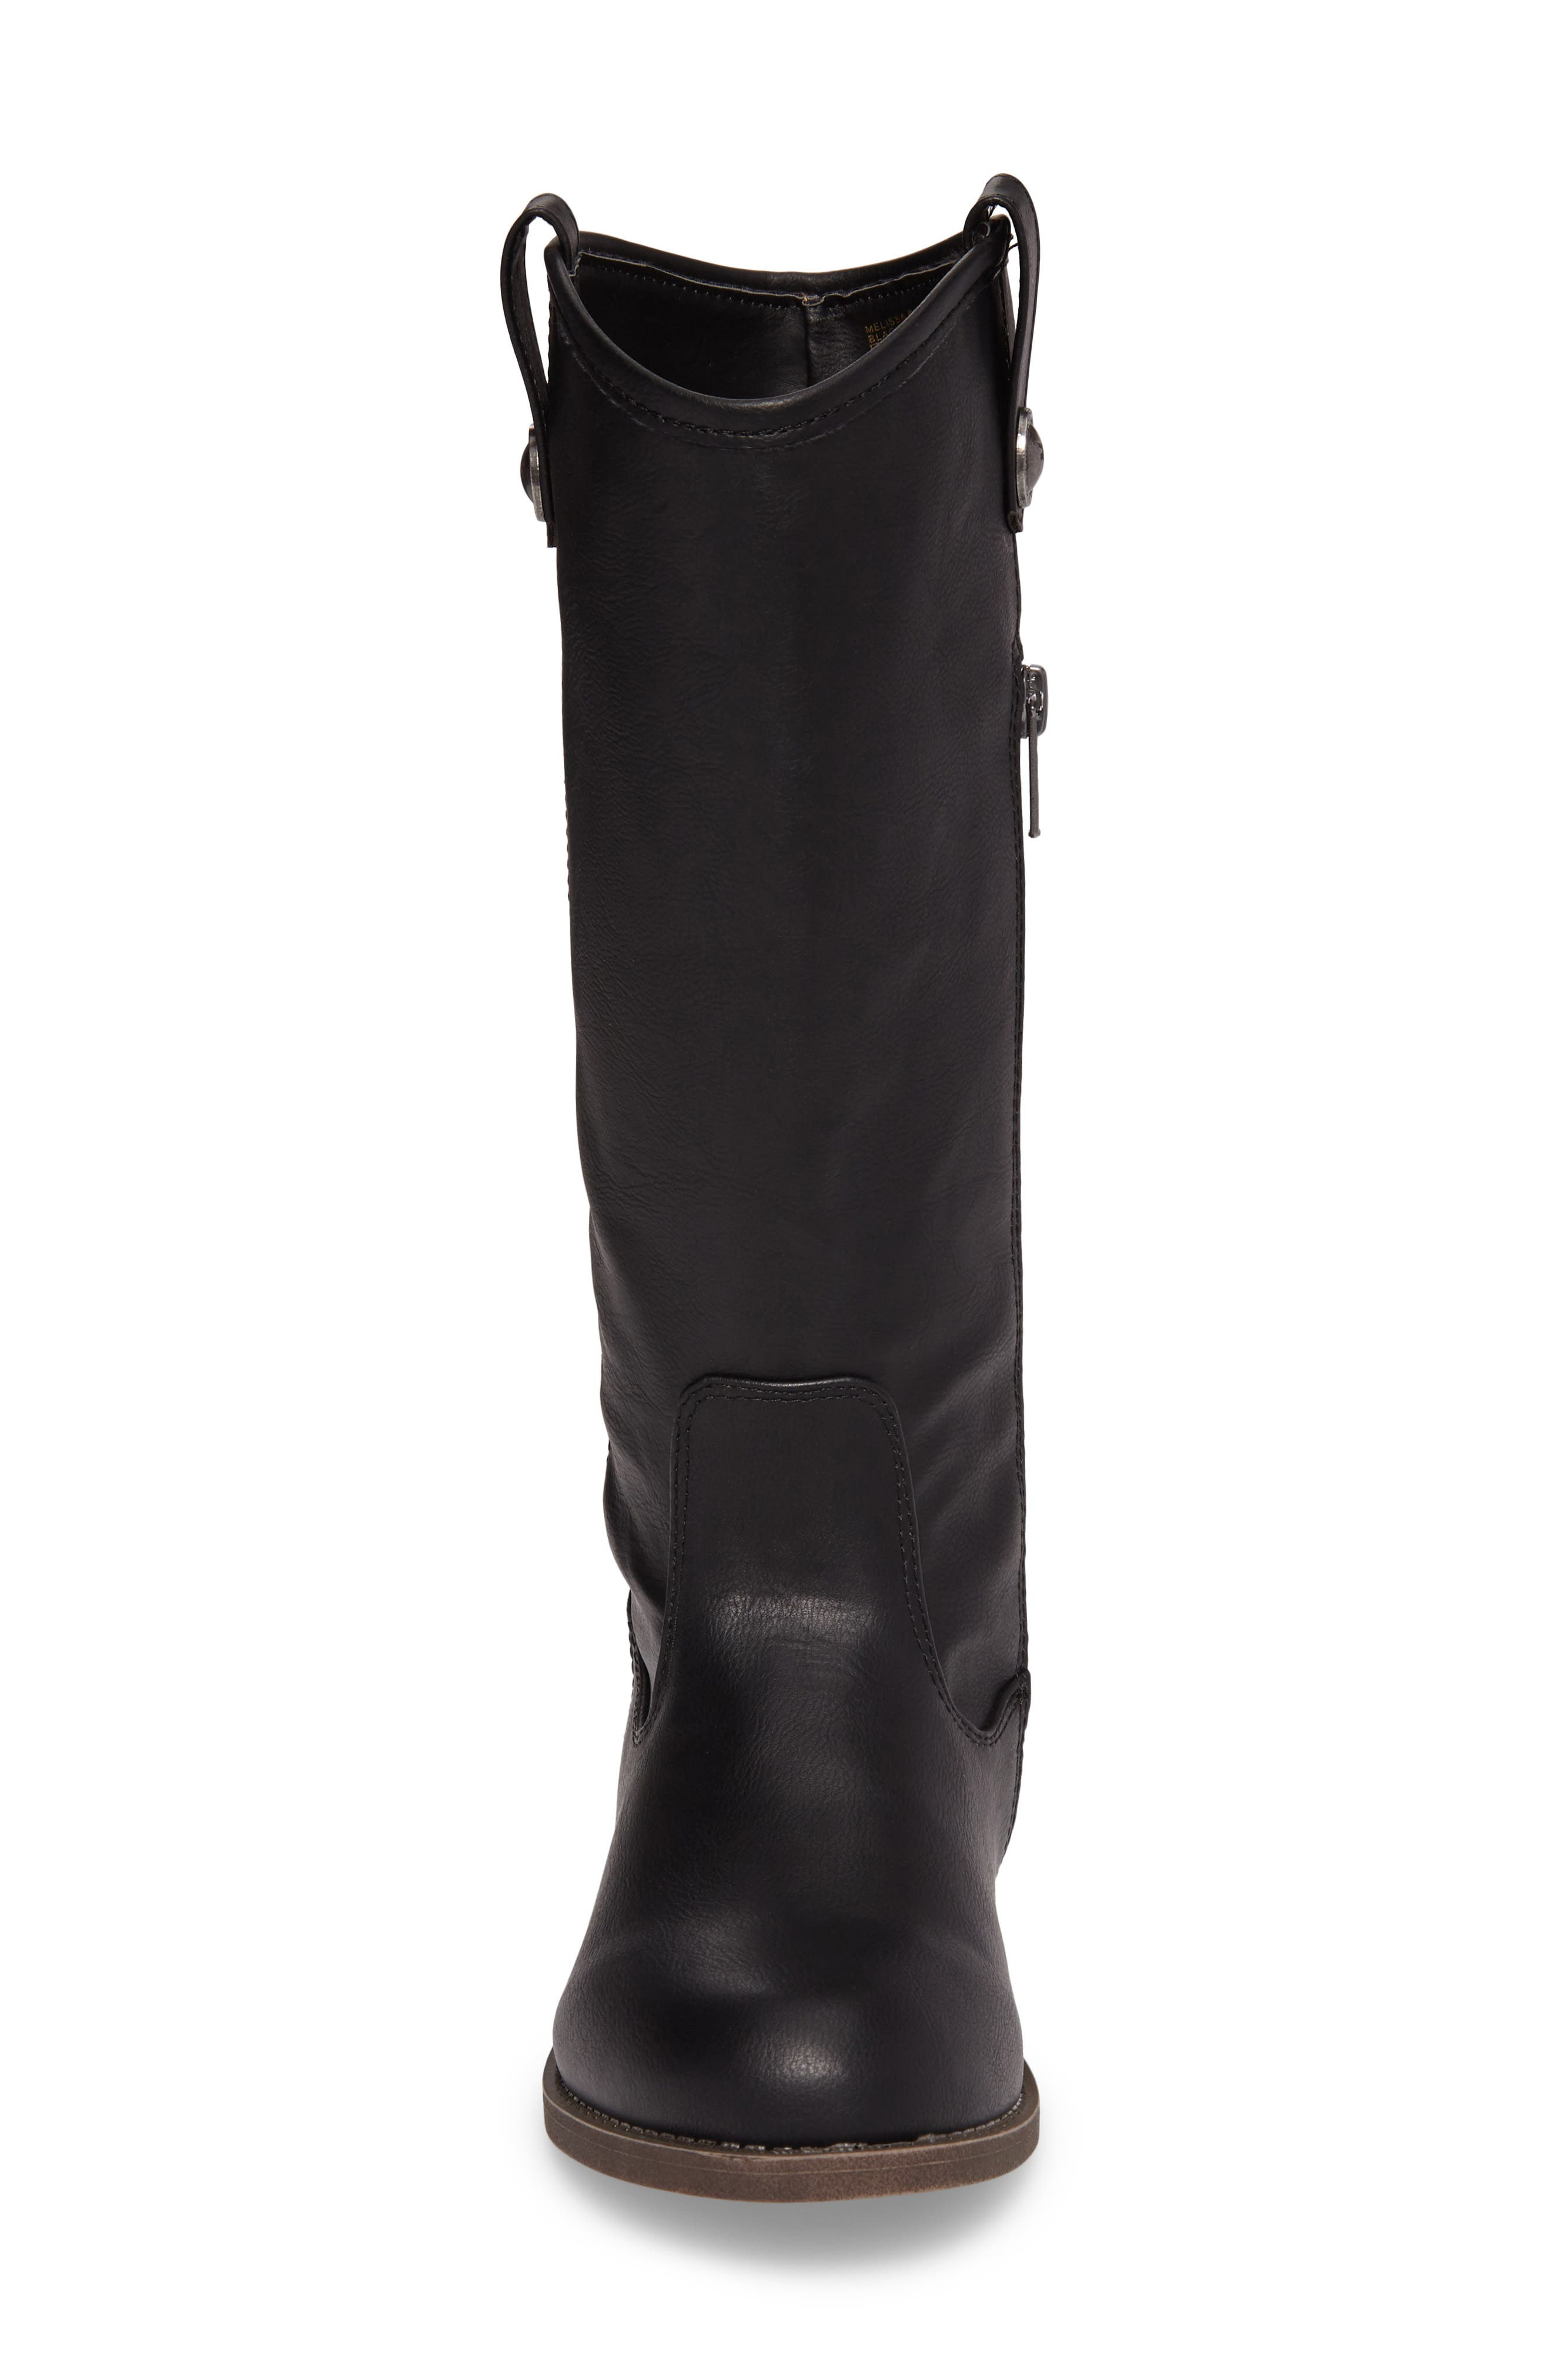 FRYE, Melissa Button Riding Boot, Alternate thumbnail 4, color, 001